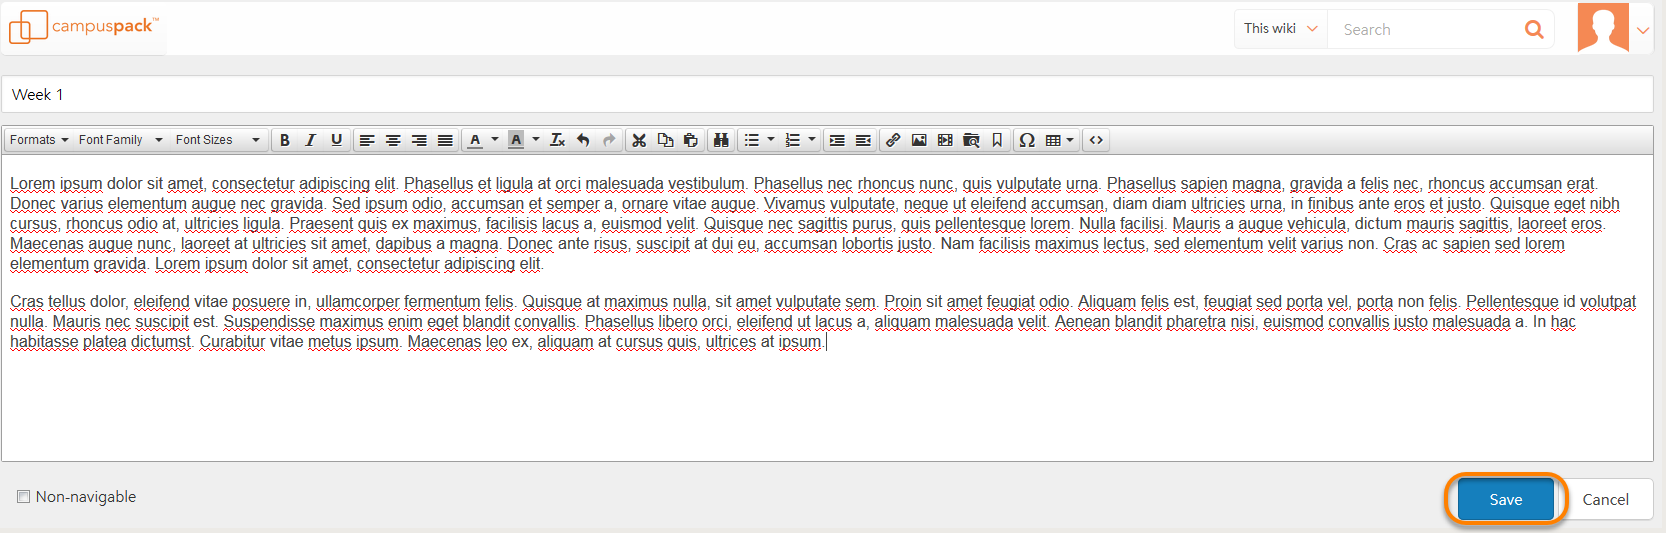 A view of the campus pack text editor with text being entered